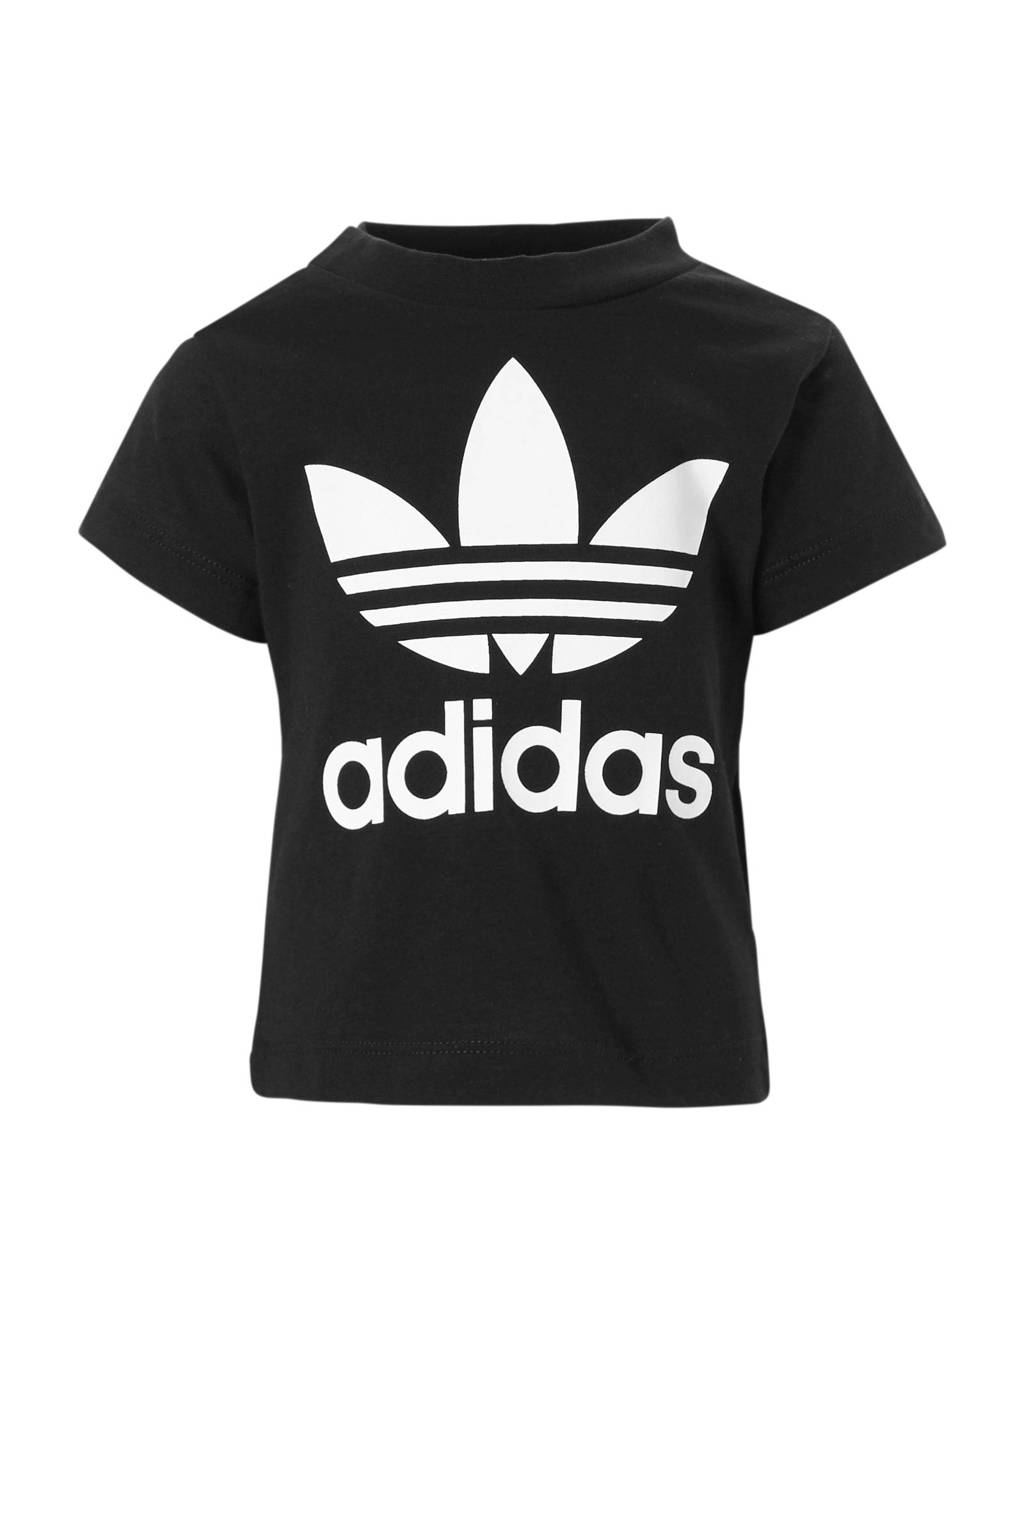 adidas originals T-shirt zwart, Zwart/wit